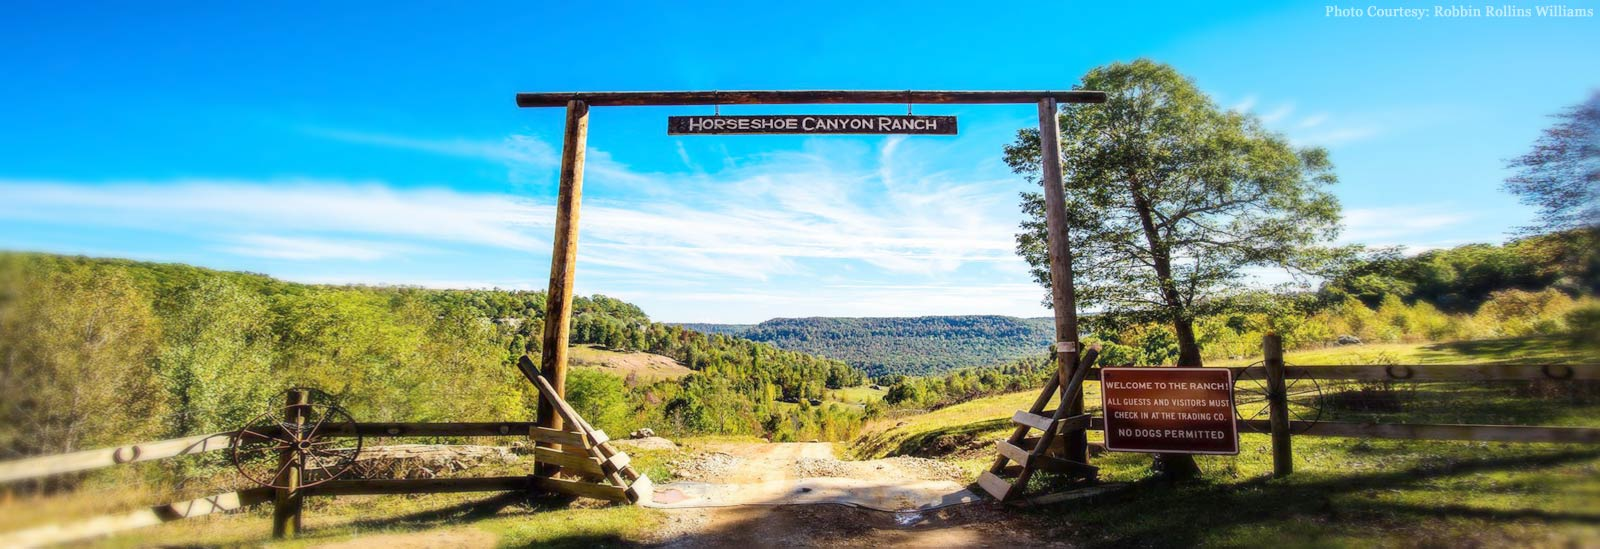 welcome gate at Horseshoe Canyon Ranch